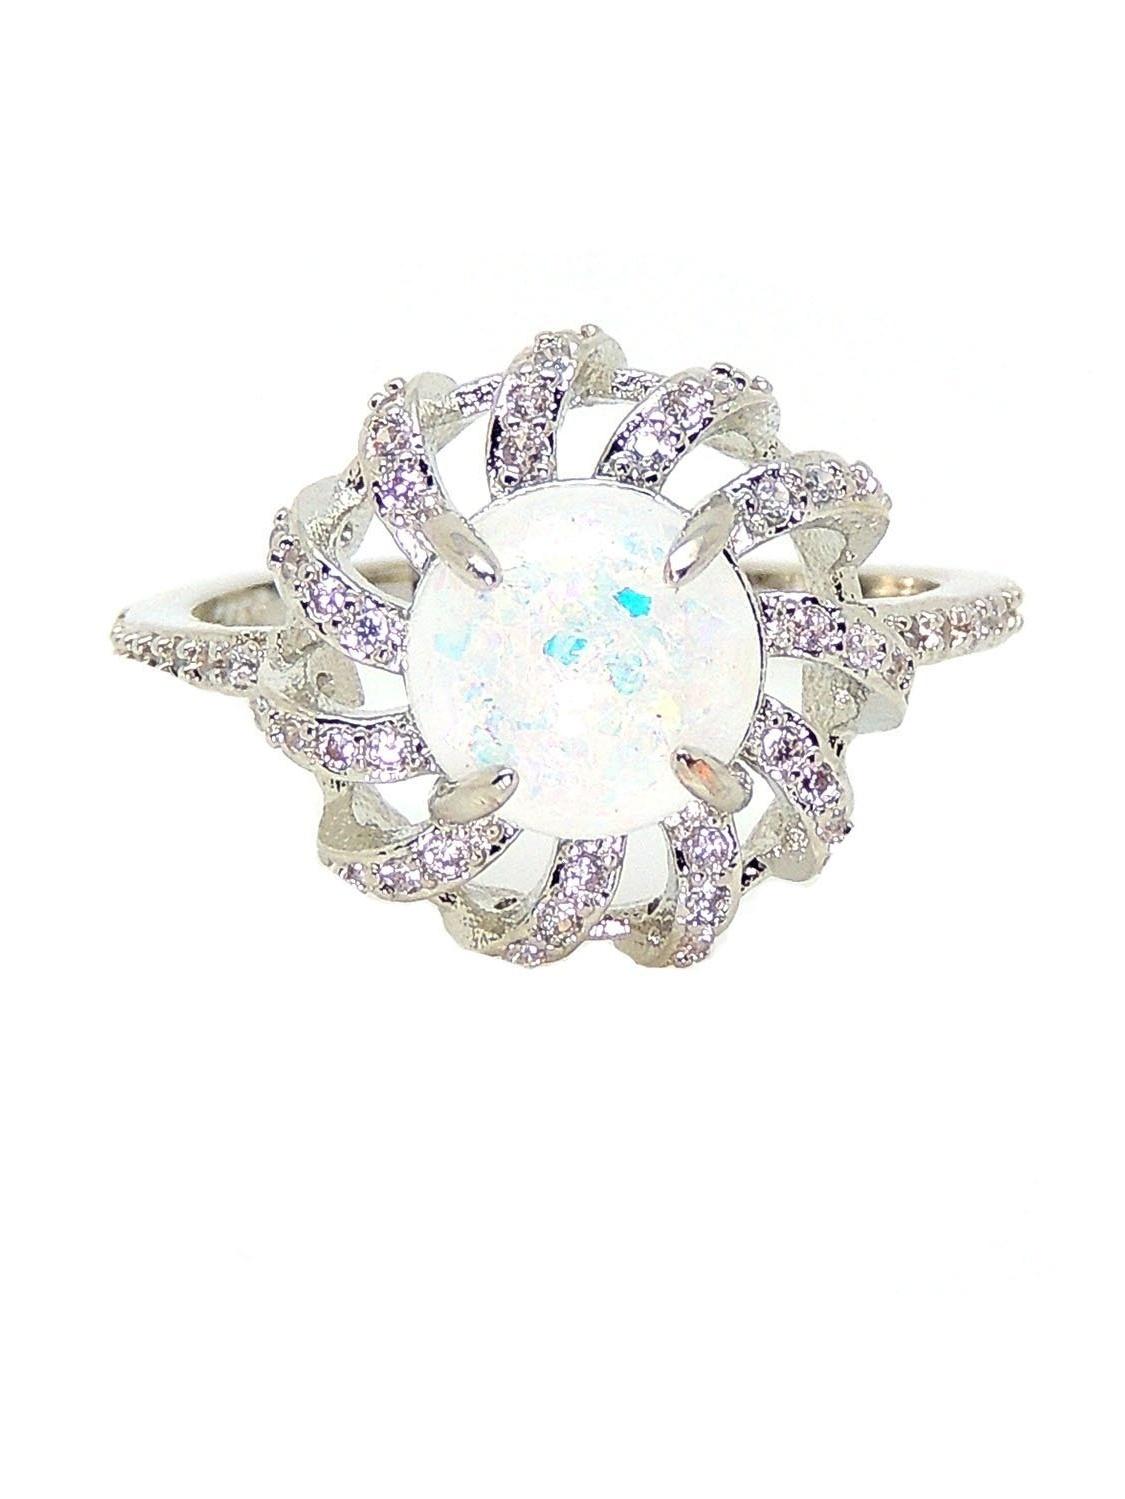 mckayla lab created fire opal with clear accents ring ginger lyne Lab Laboratory mckayla lab created fire opal with clear accents ring ginger lyne collection walmart